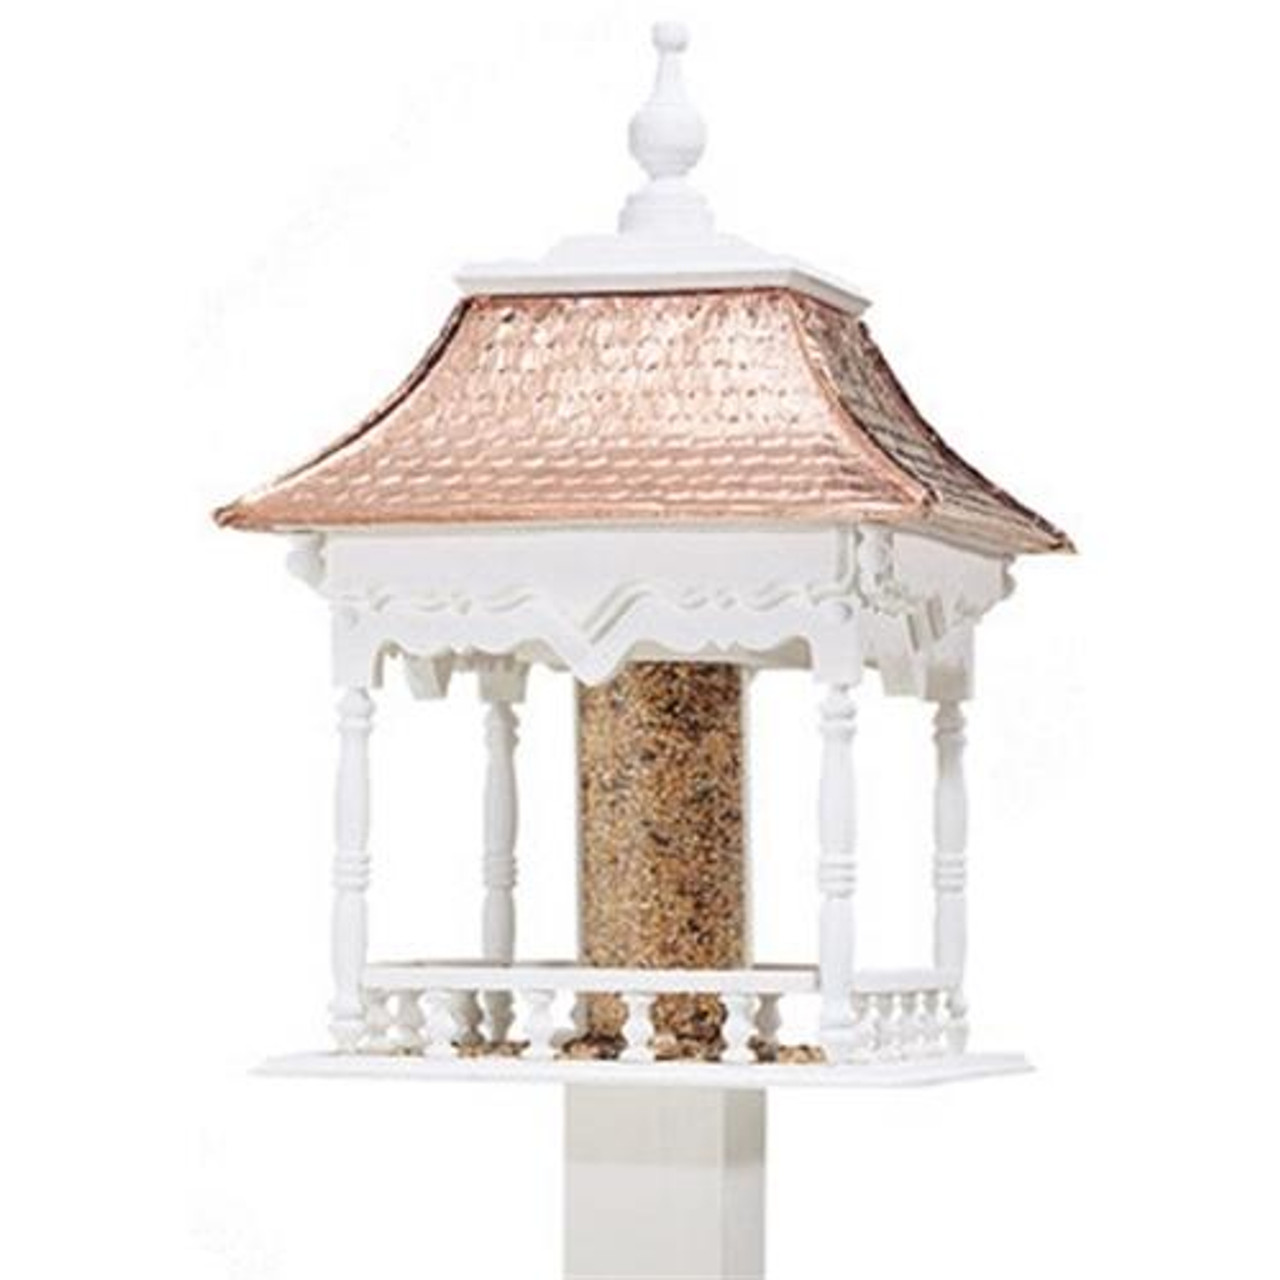 Cherry Tree Toys Curved Copper Roof Feeder Plan